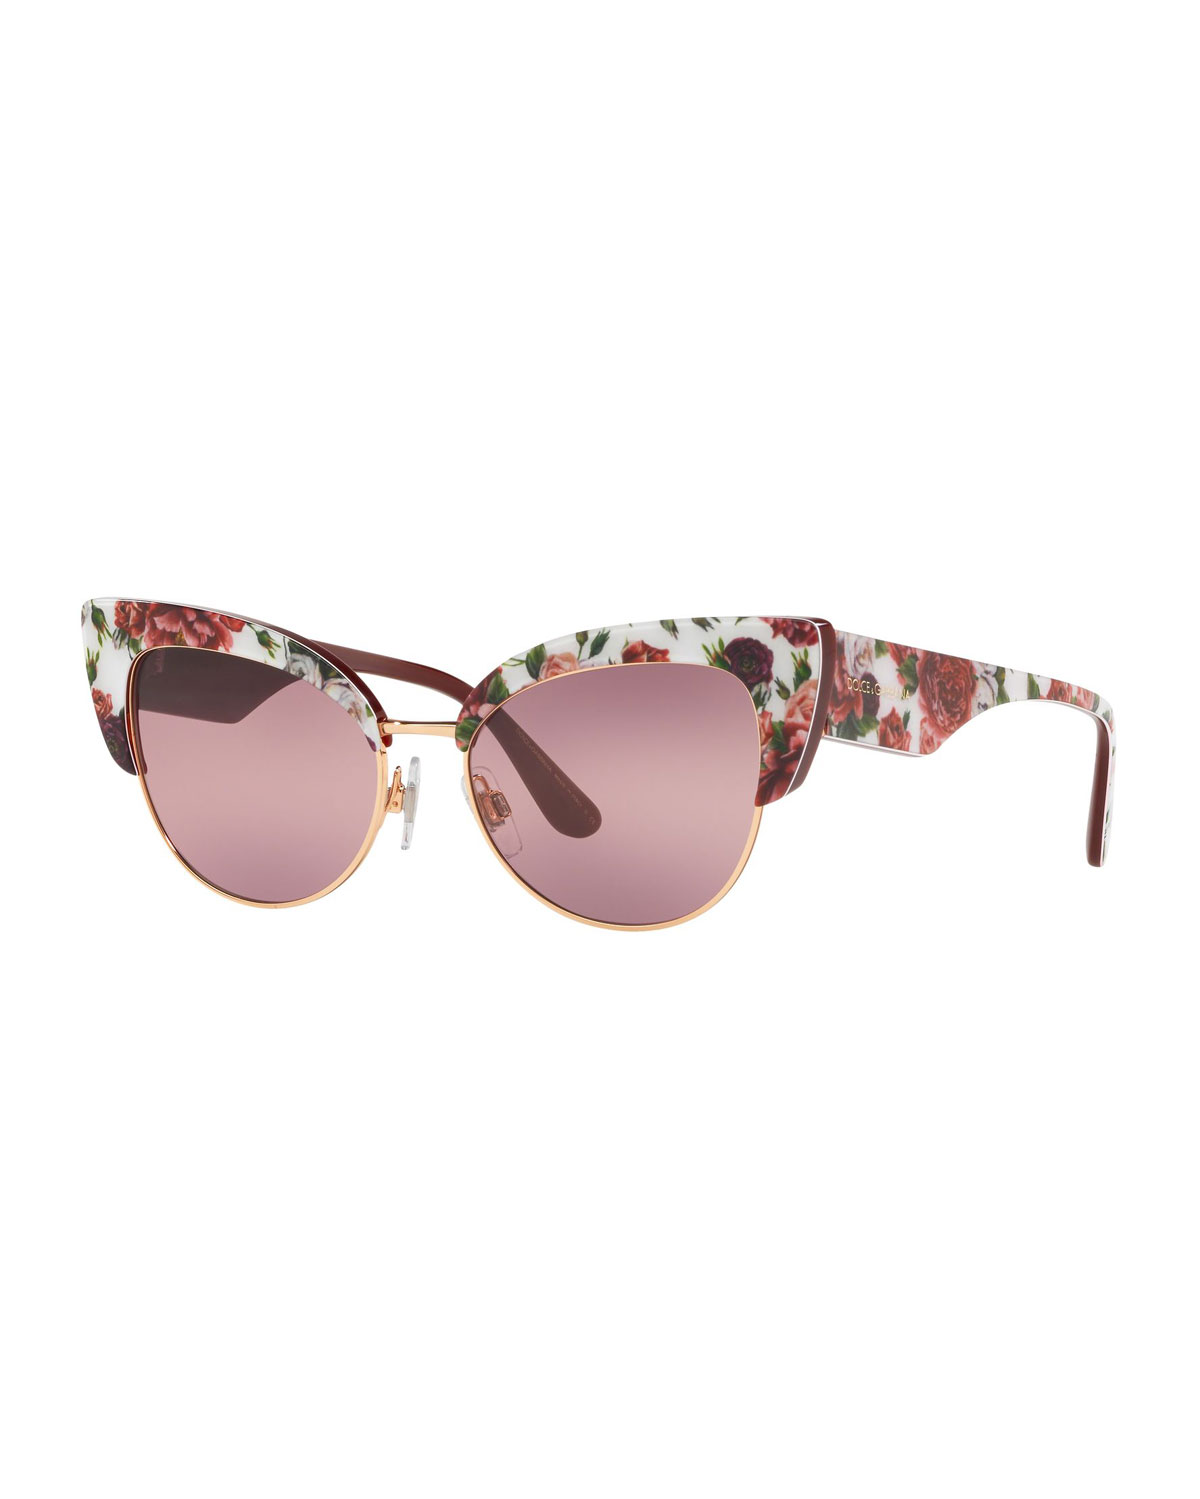 694690c0d Dolce & Gabbana Floral Printed Acetate Cat-Eye Sunglasses | Neiman ...